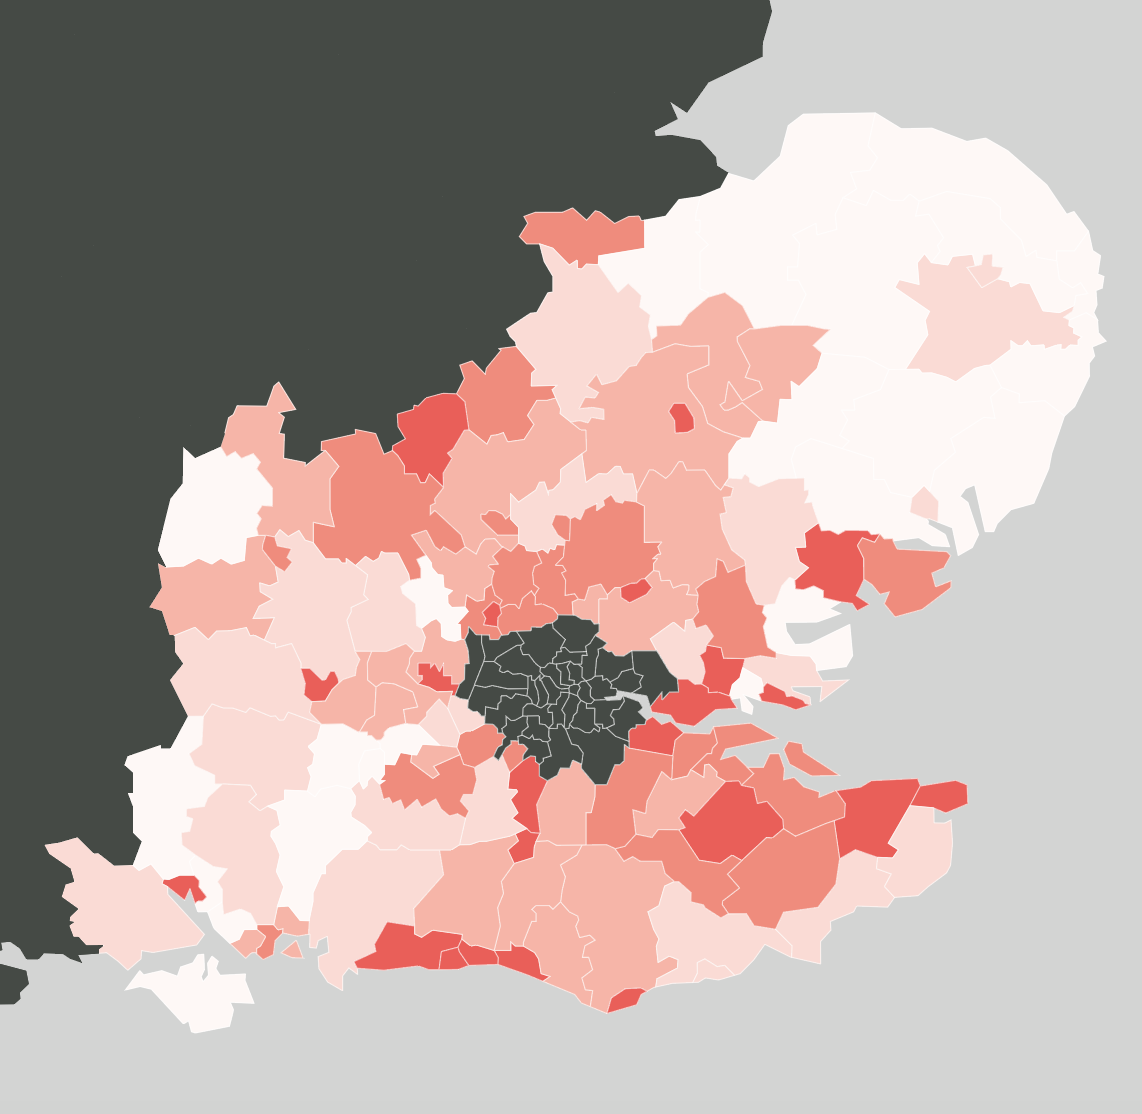 A heat map of south east counties in england.